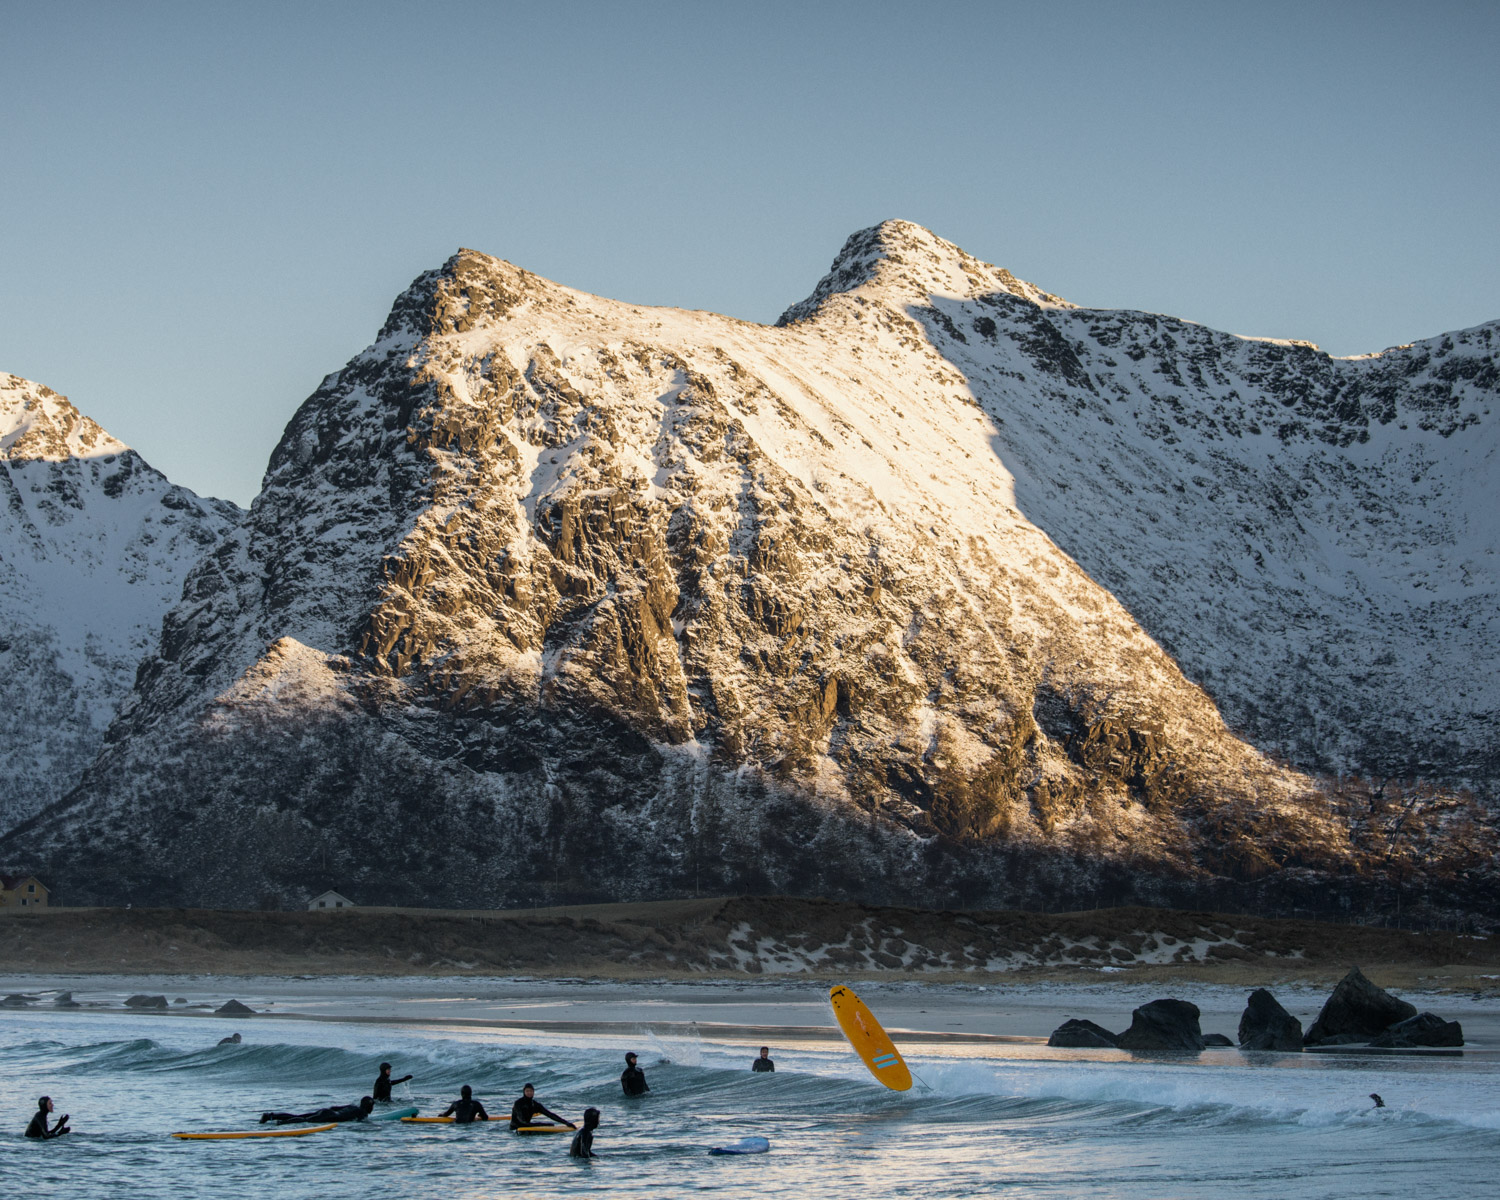 A group of visitor is learning to surf on the spot of Flakstad in the lofoten islands